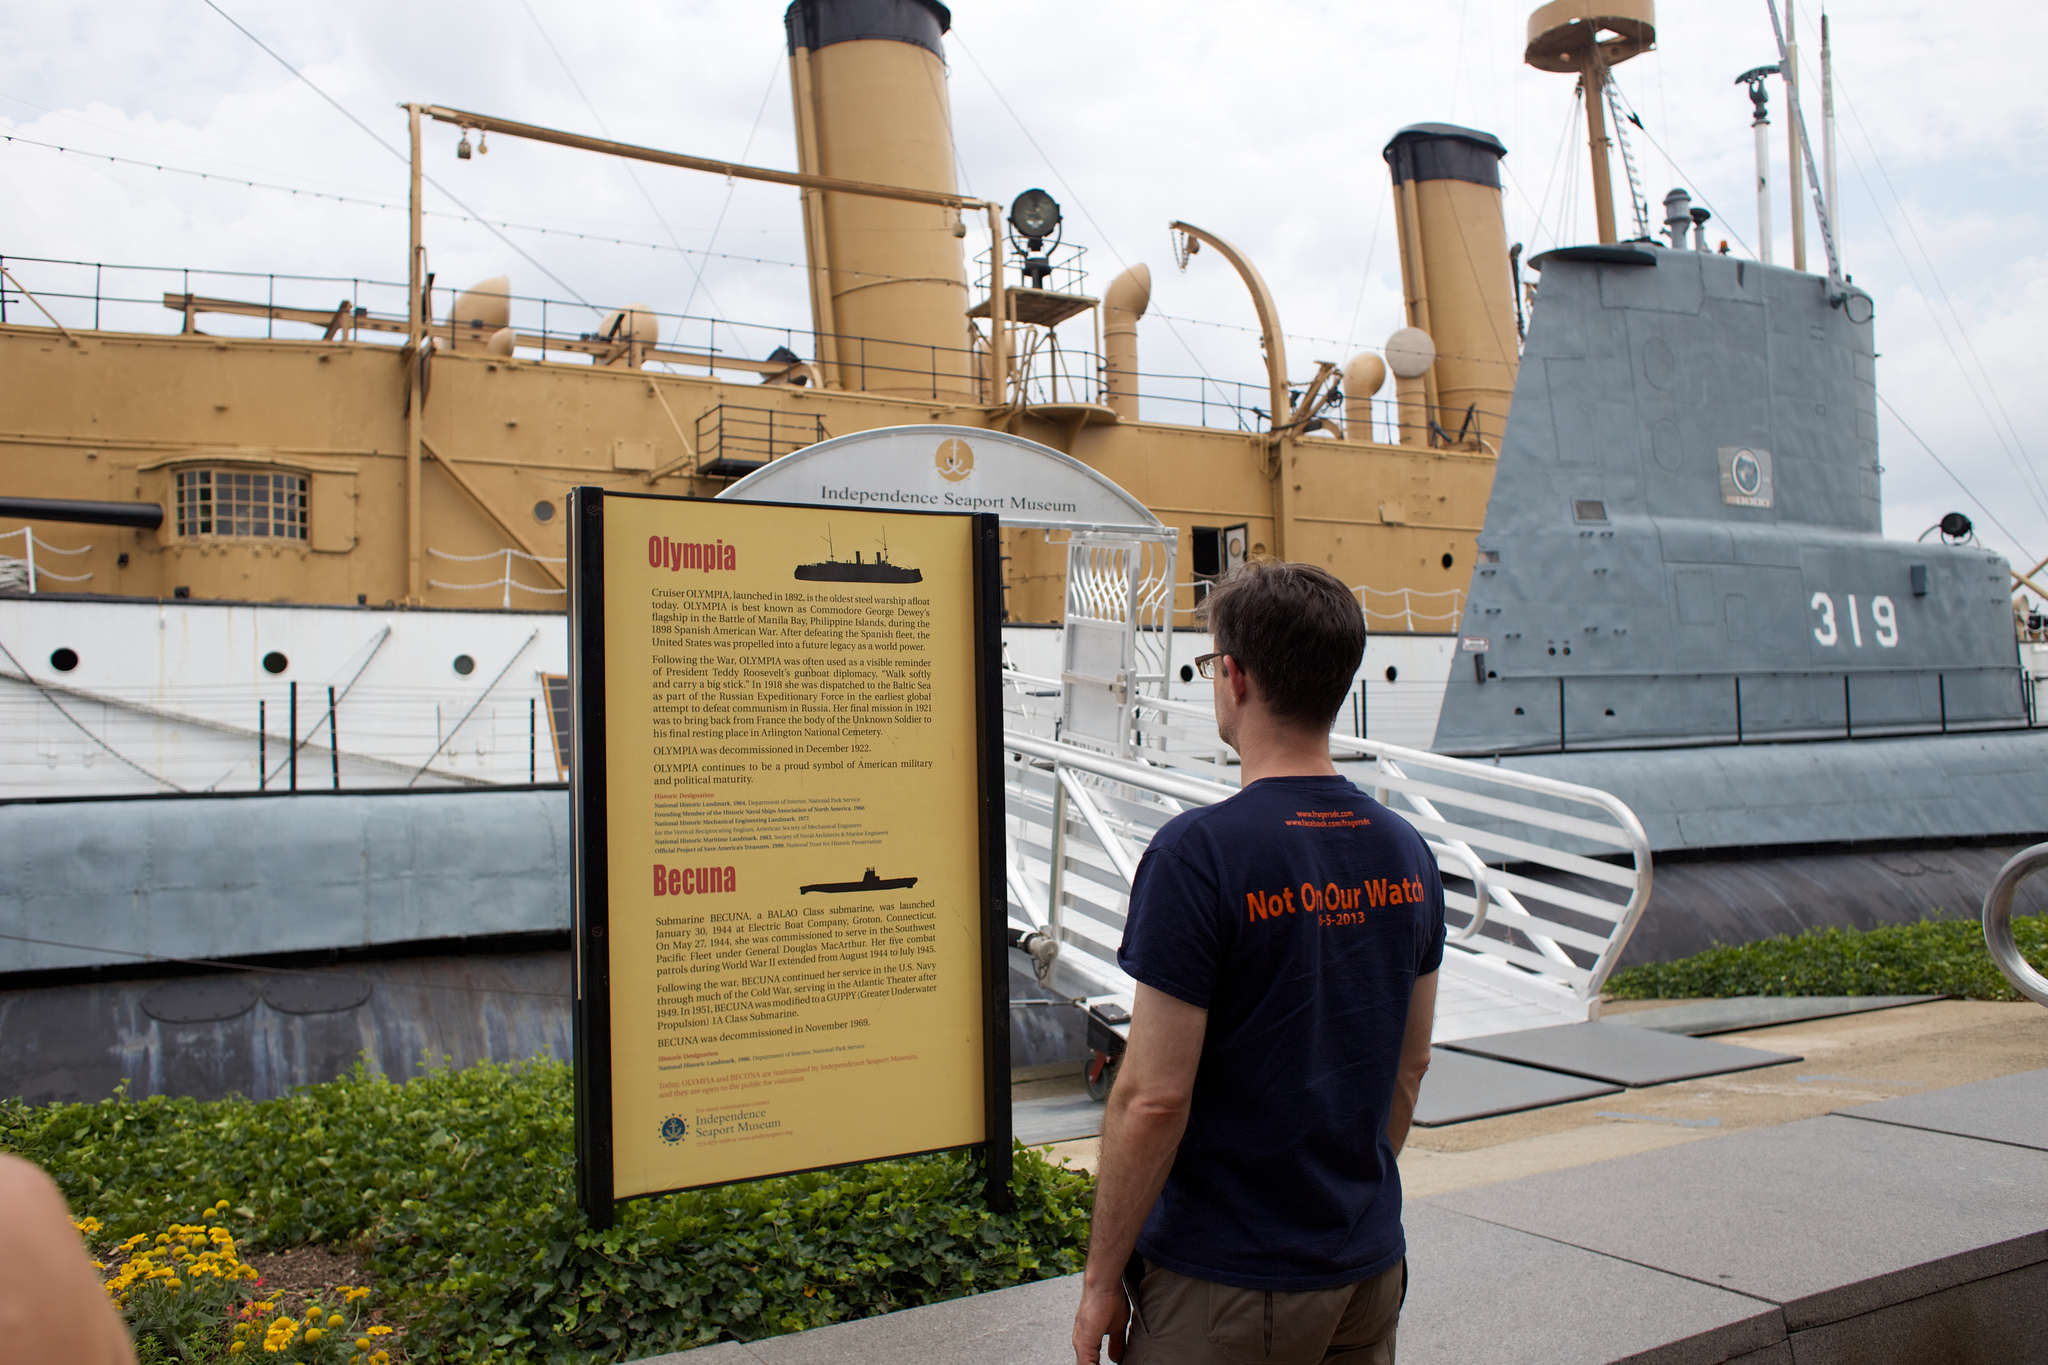 """Kent Intrigued by the Independence Seaport Museum"" by Juan Monroy via Flickr Creative Commons"